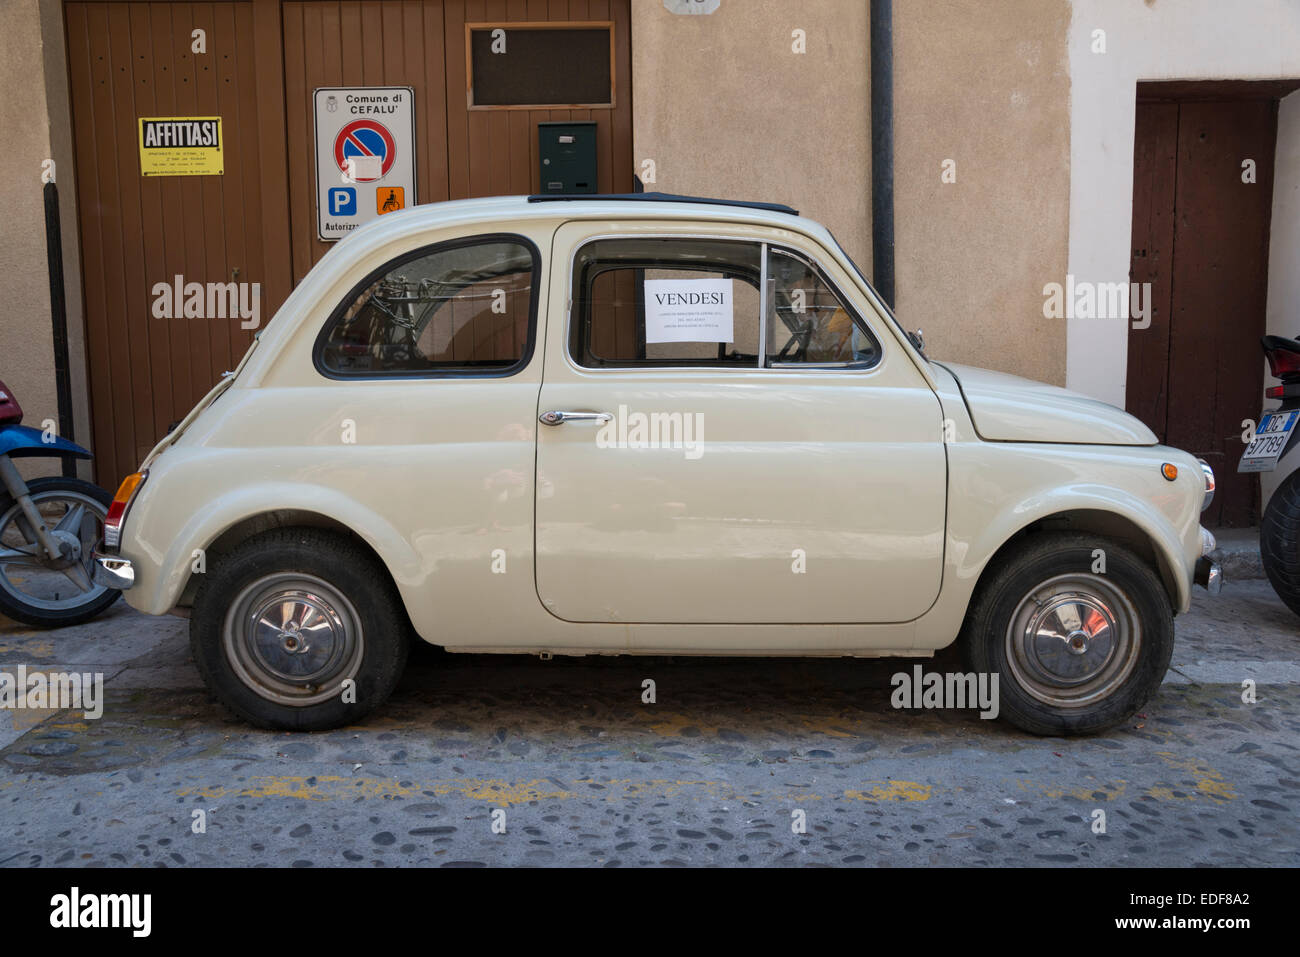 Old Car For Sale >> An Old Fiat 500 Cinquecento Car For Sale On A Street In